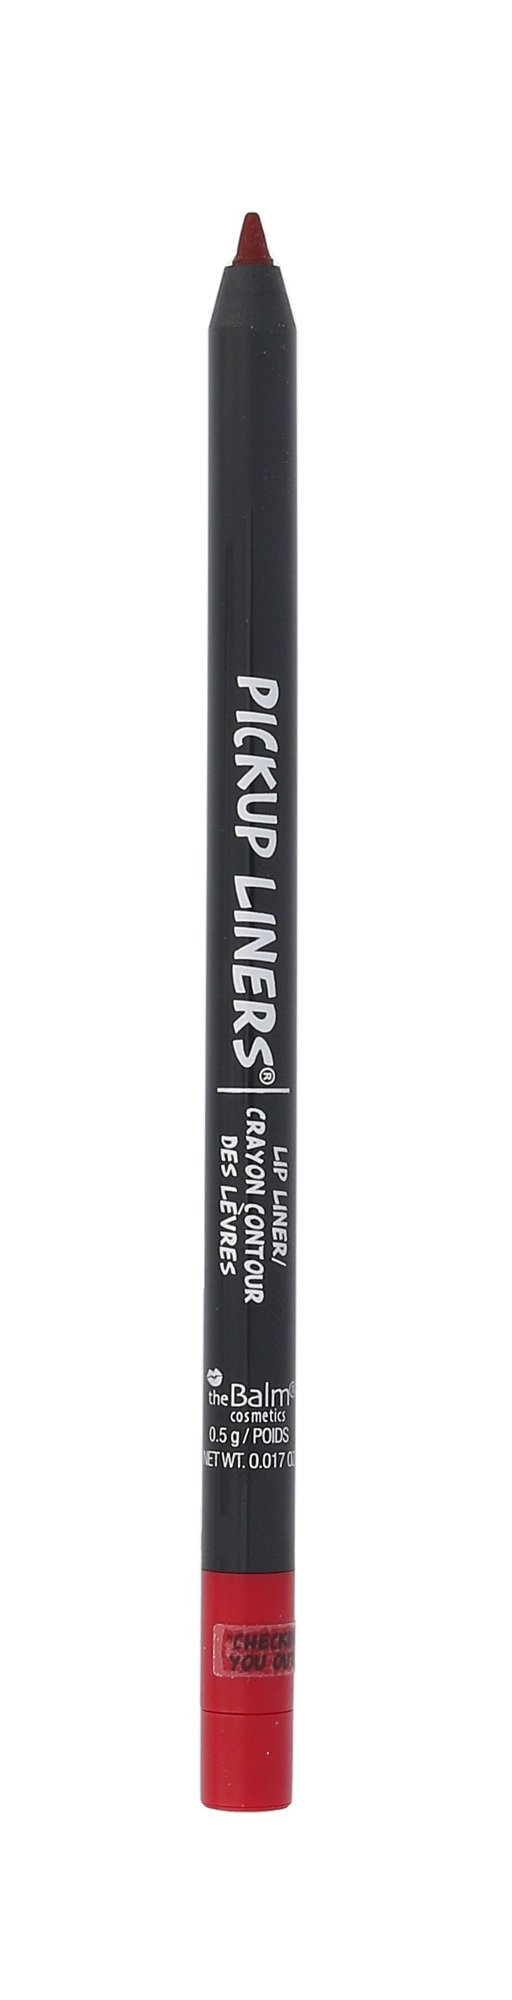 TheBalm Pickup Liners Lip Liner Cosmetic 0,5g Checking You Out...